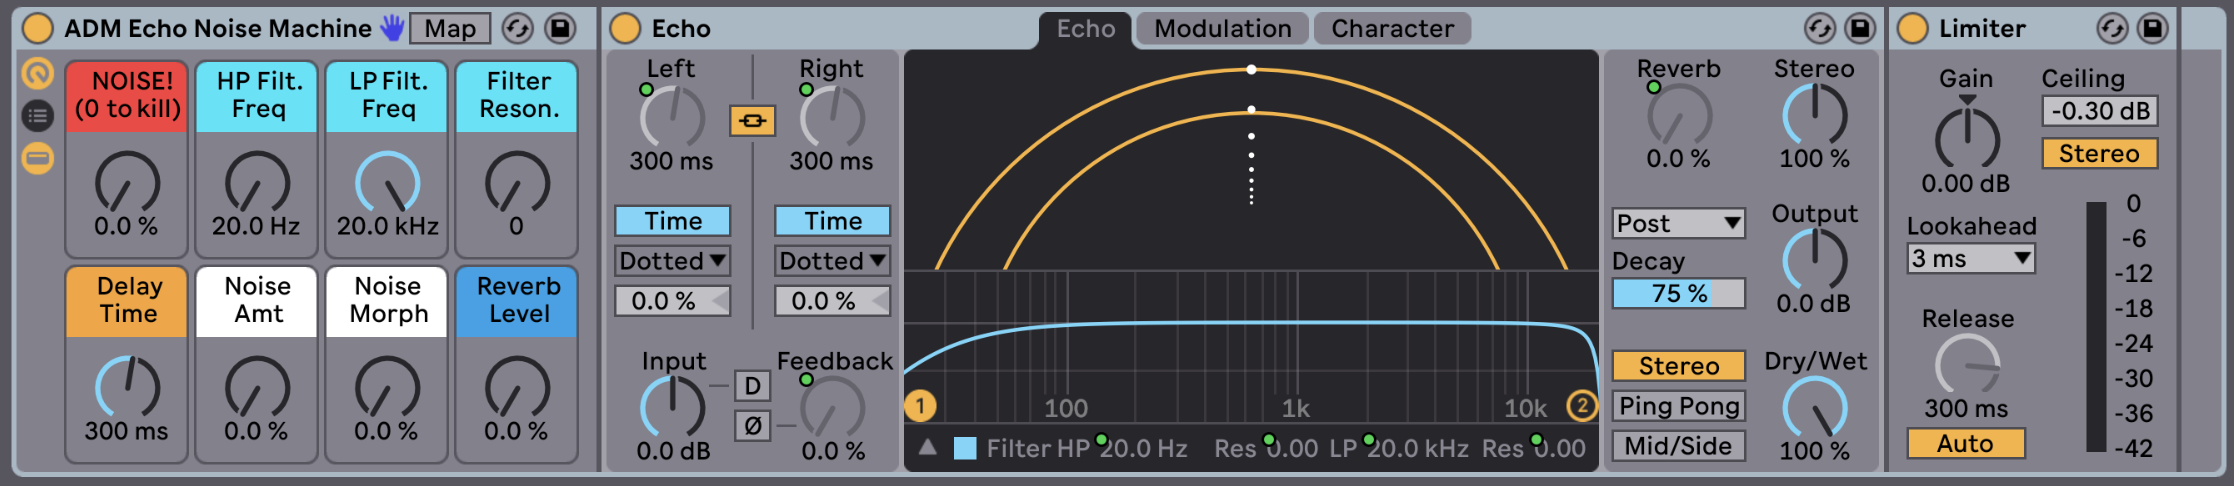 Echo Noise Machine- Create interesting noises just by turning the knobs.